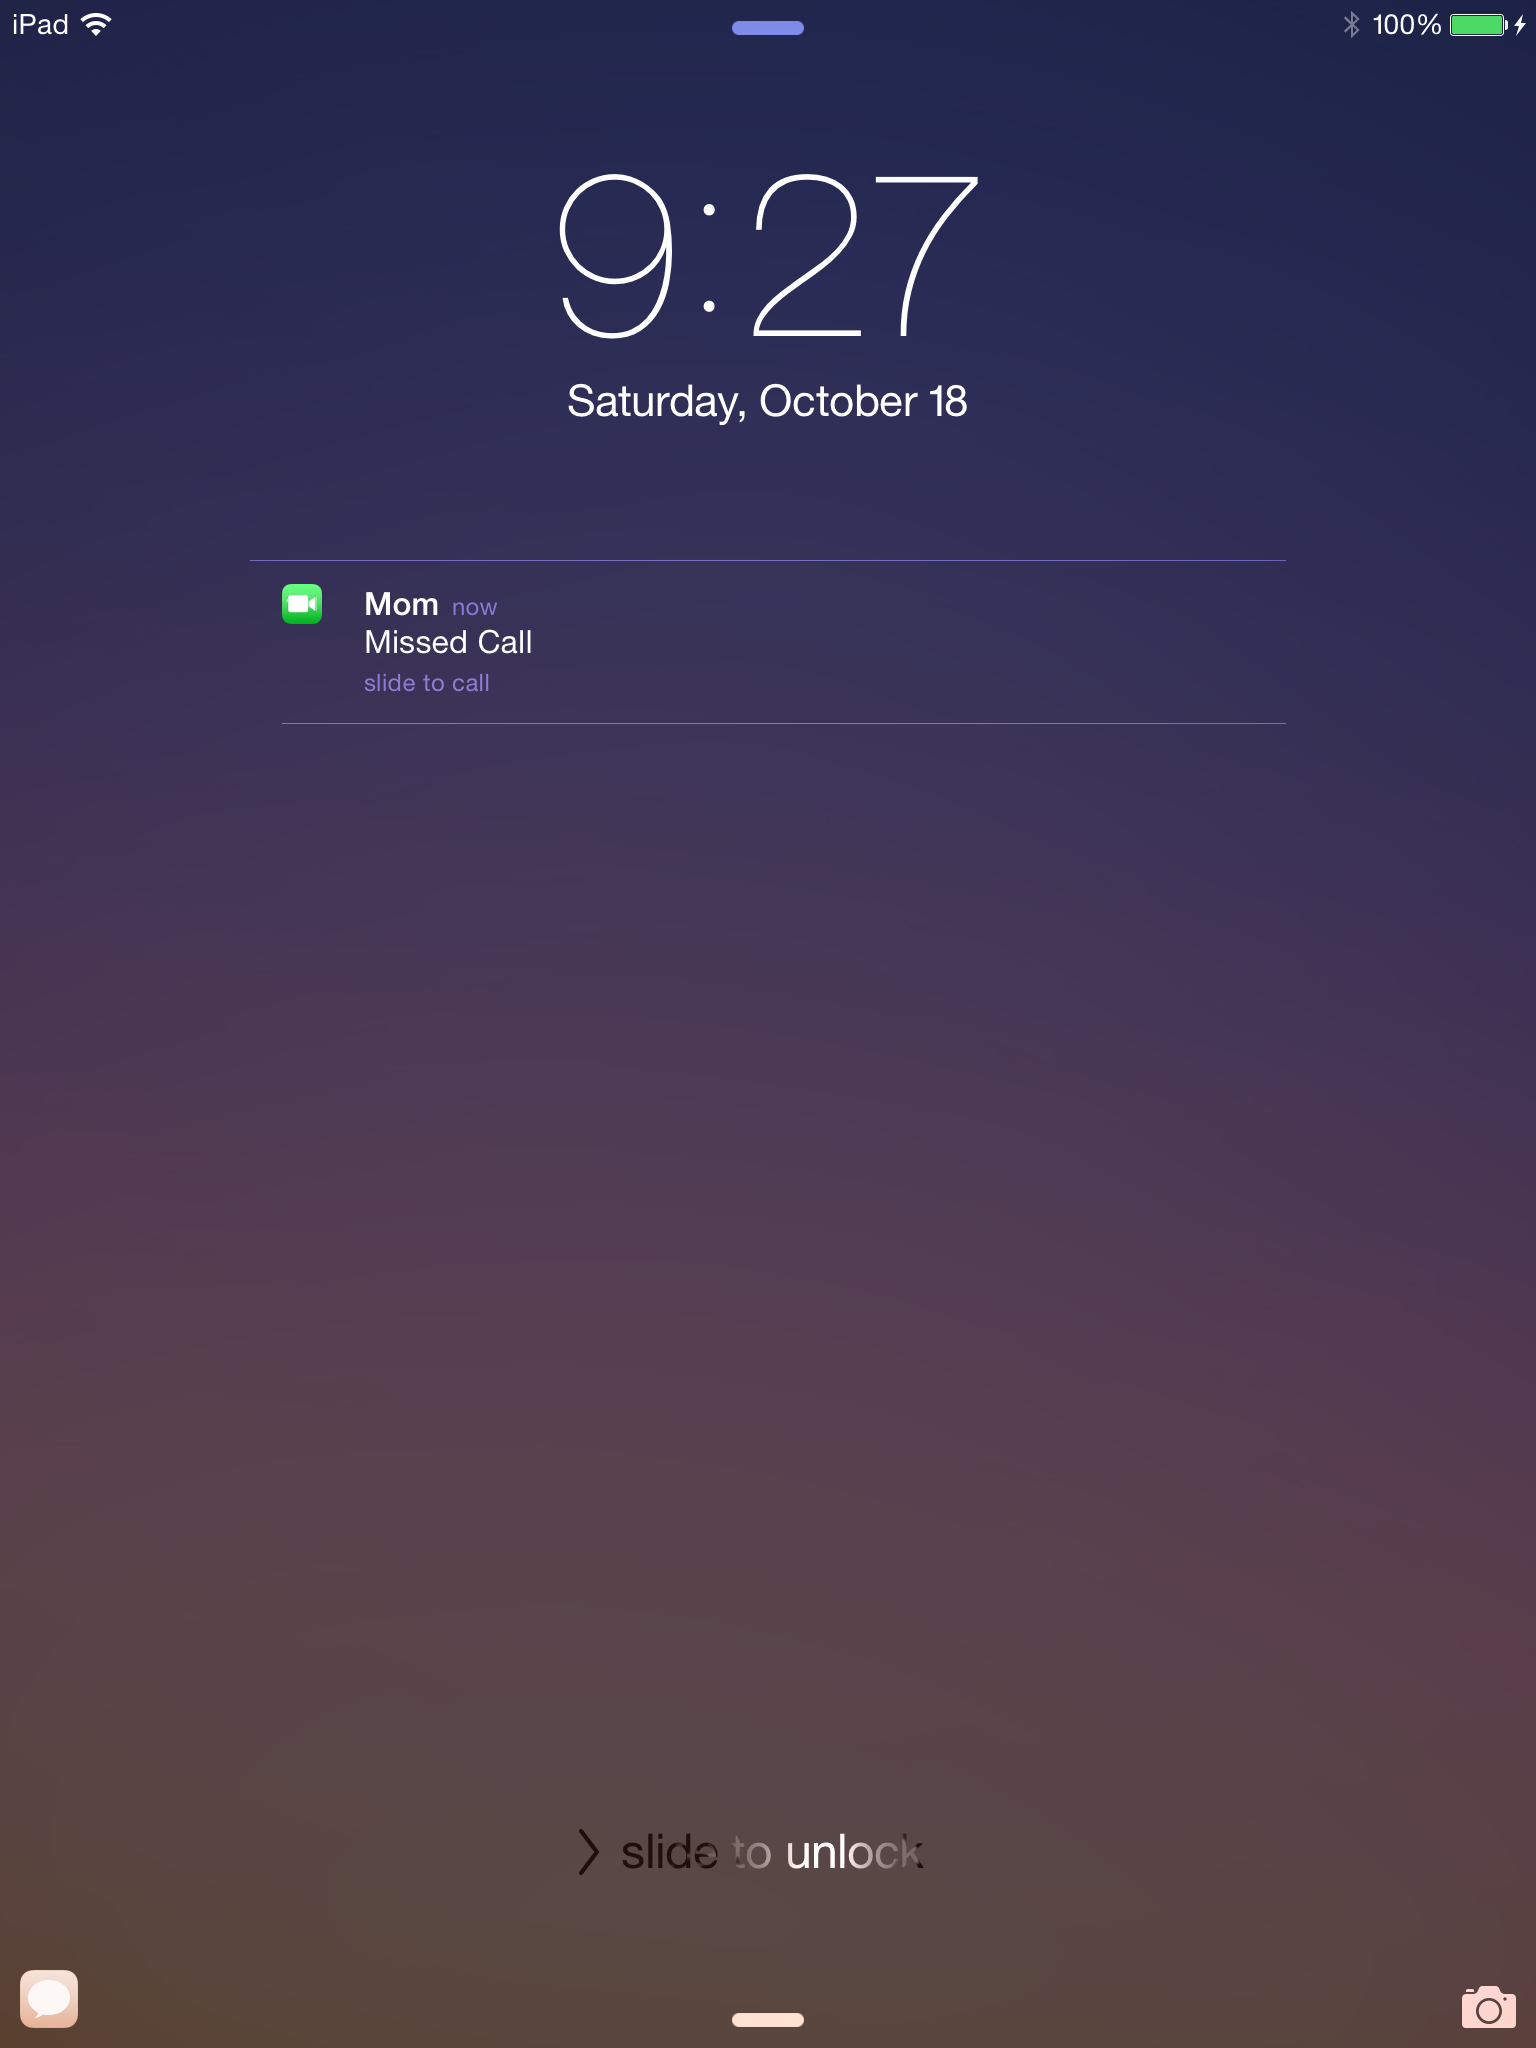 Yosemite & iOS 8 How-to: Send and receive phone calls from